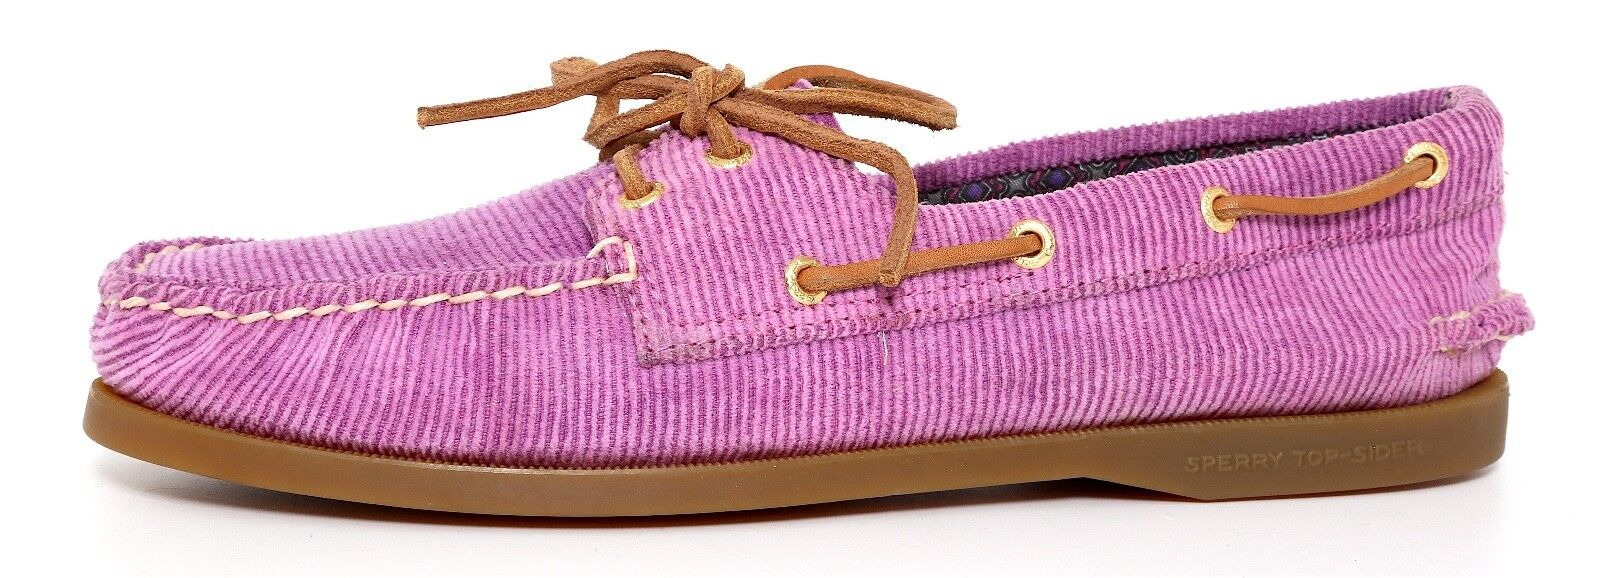 Sperry Top Sider 2 Eye Slip On shoes Berry Women Sz 9 M 5270